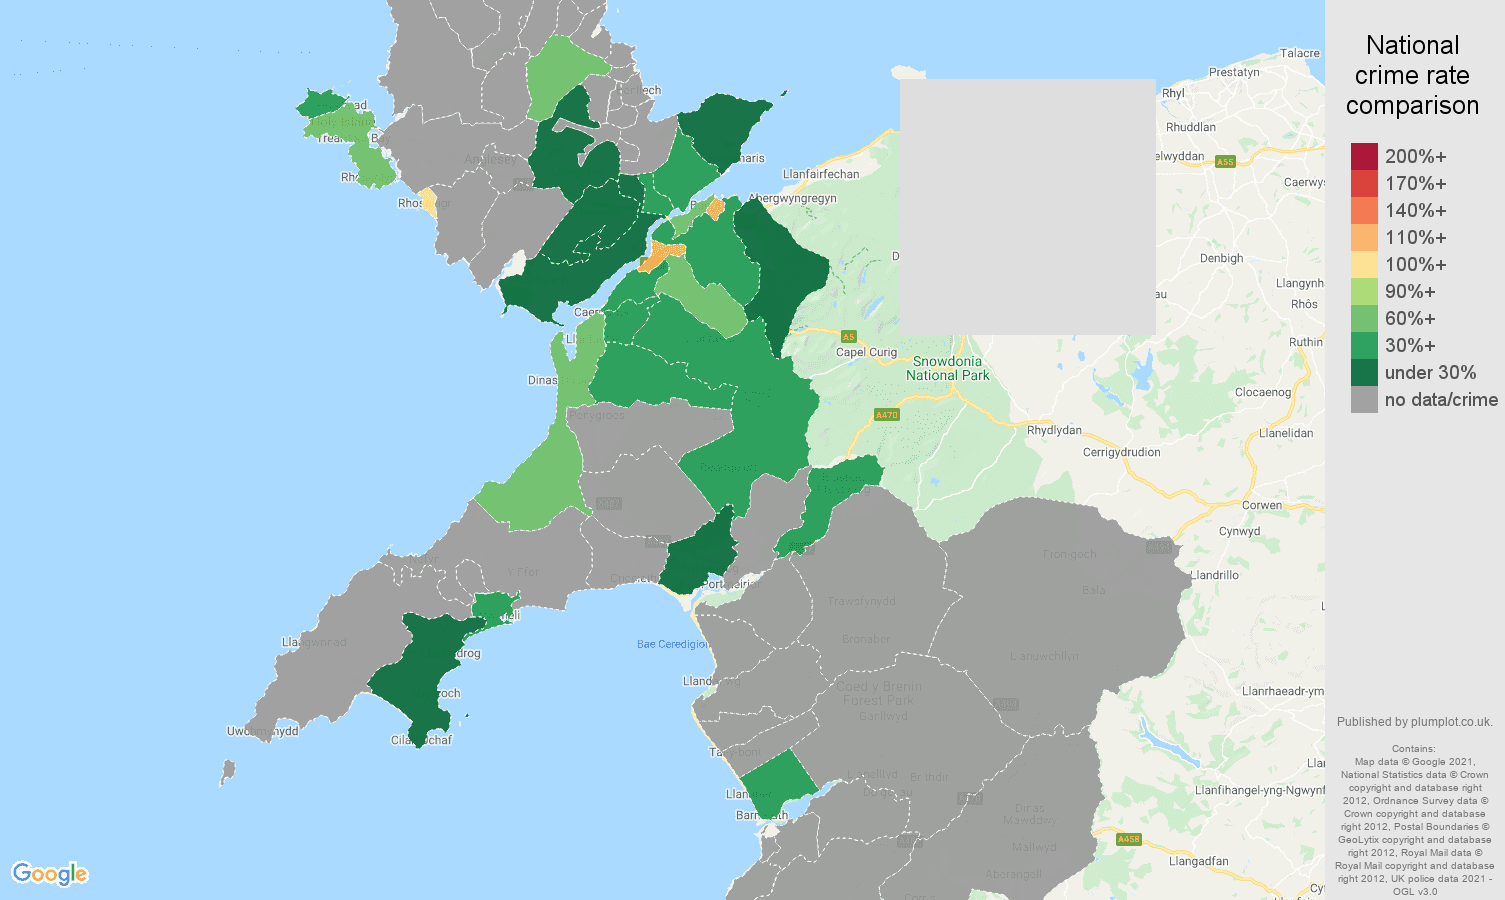 Gwynedd bicycle theft crime rate comparison map